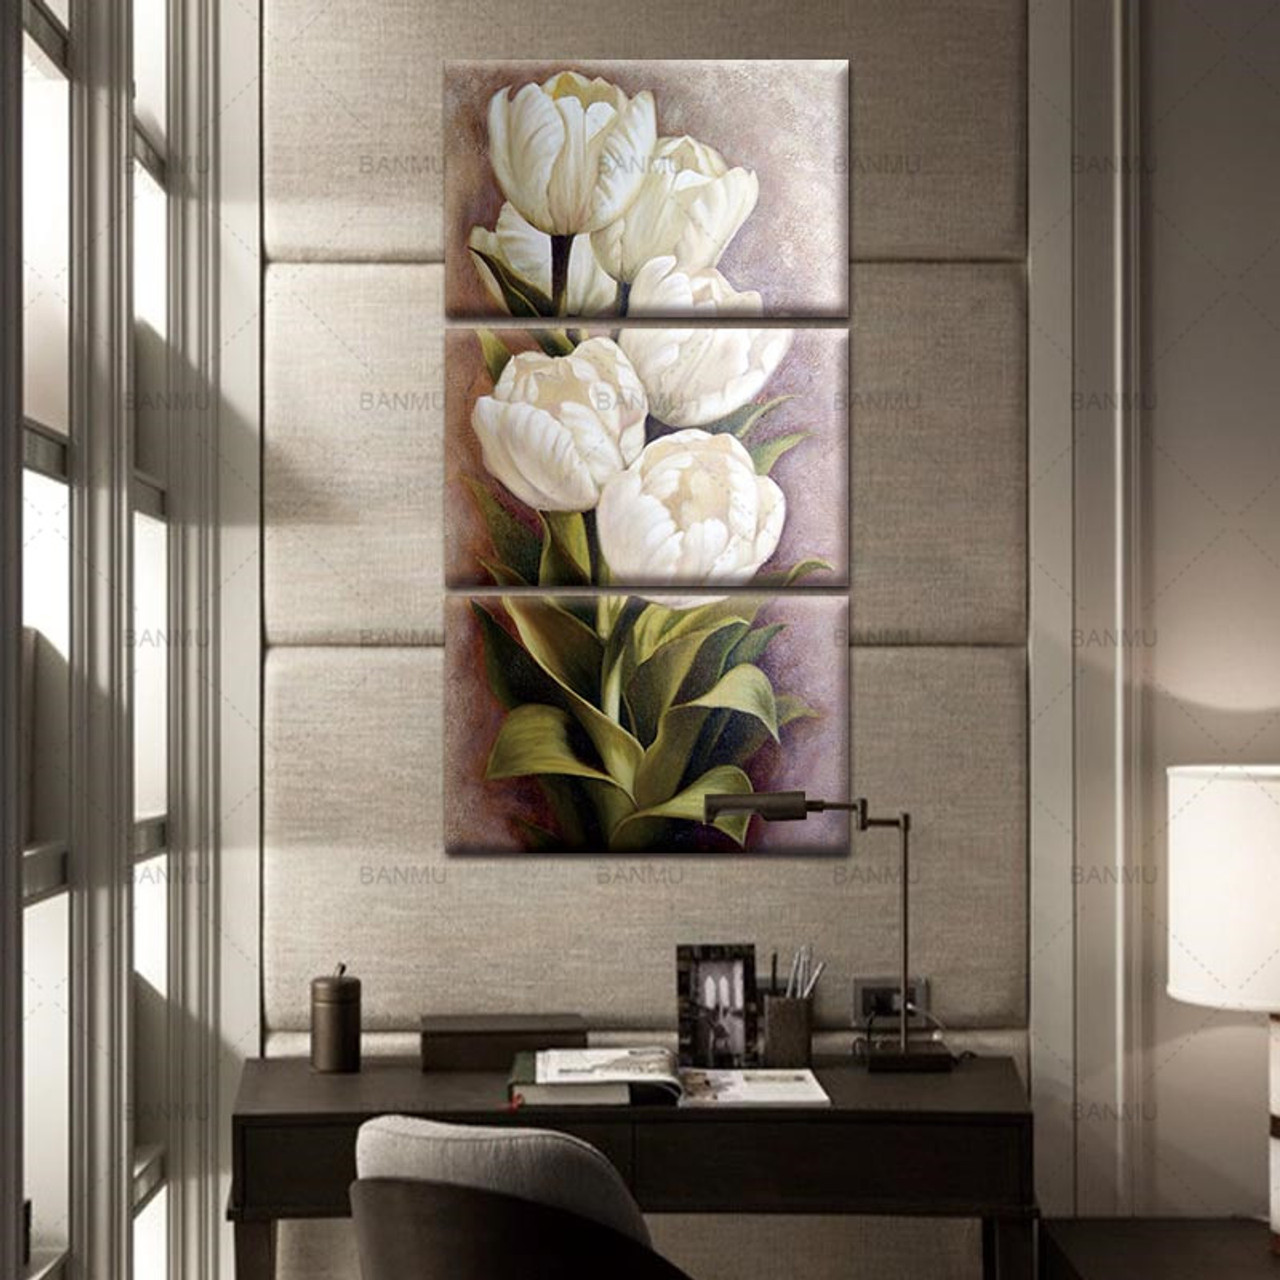 Tulips 3 Panels Wall Art Canvas Paintings Wall Decorations for Living Room Home Office Artwork Giclee303111524134070jpgcu003d2 tiny bedroom nook u0027a casarella tiny